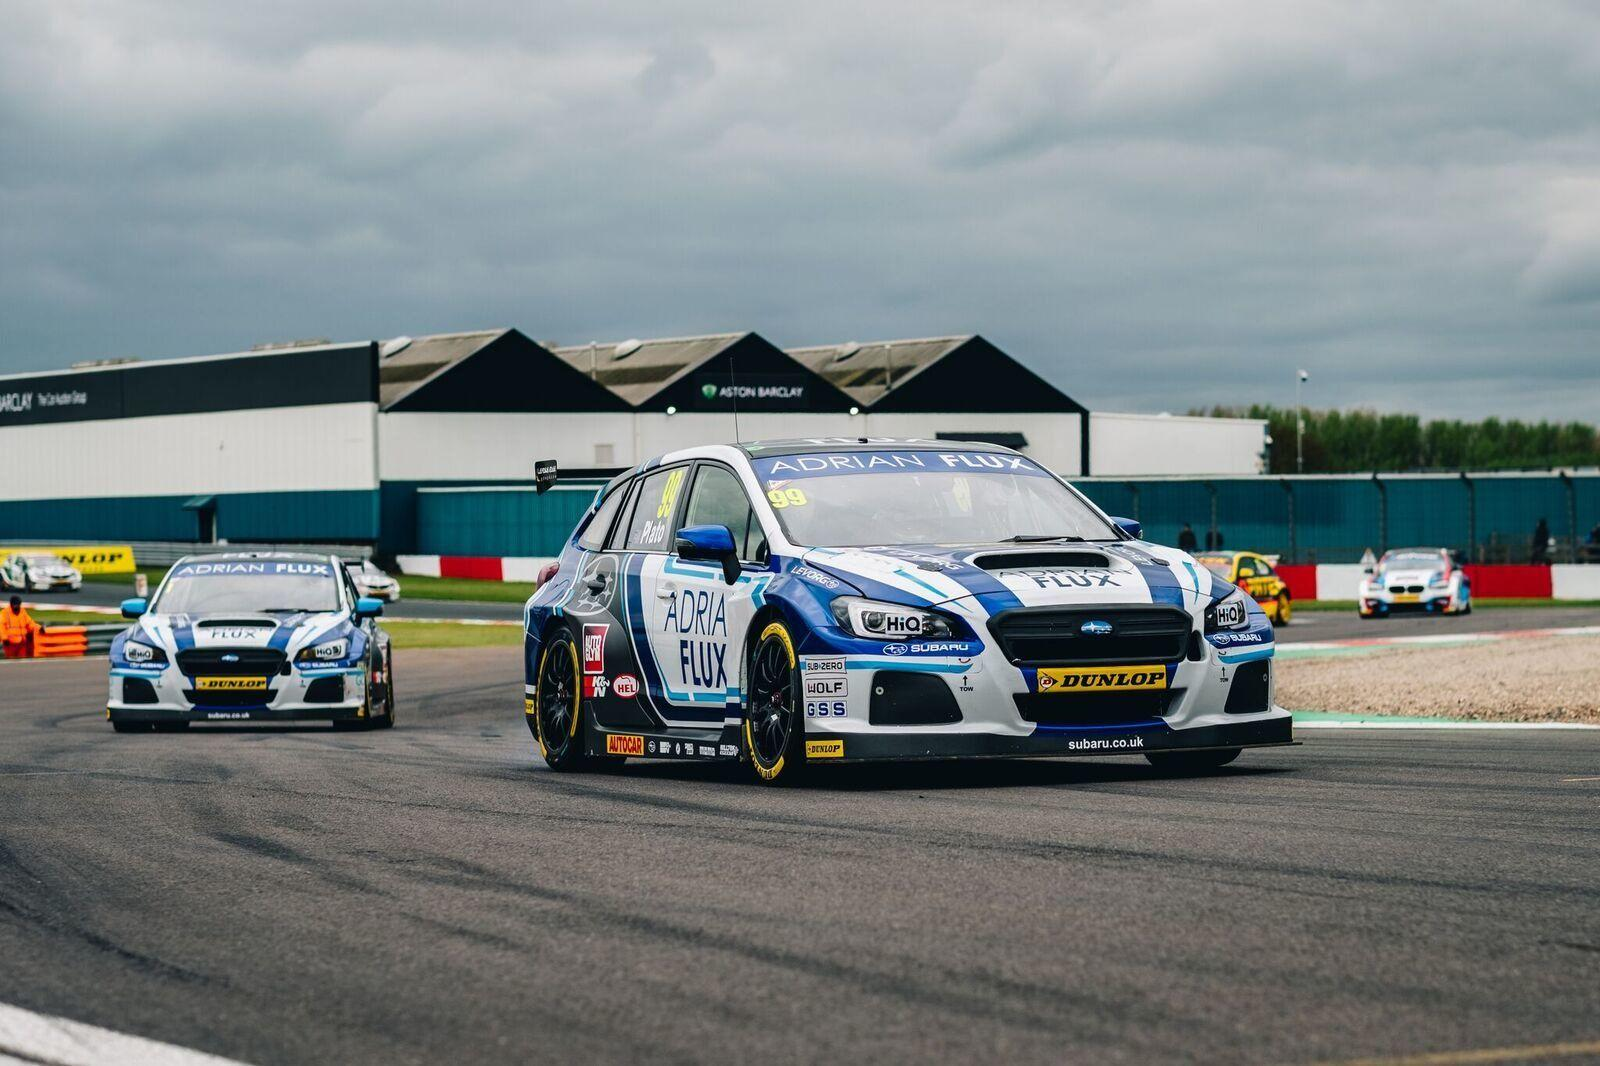 TEAM BMR'S SUBARU LEVORG TRIO IN THICK OF THE ACTION AT DONINGTON PARK